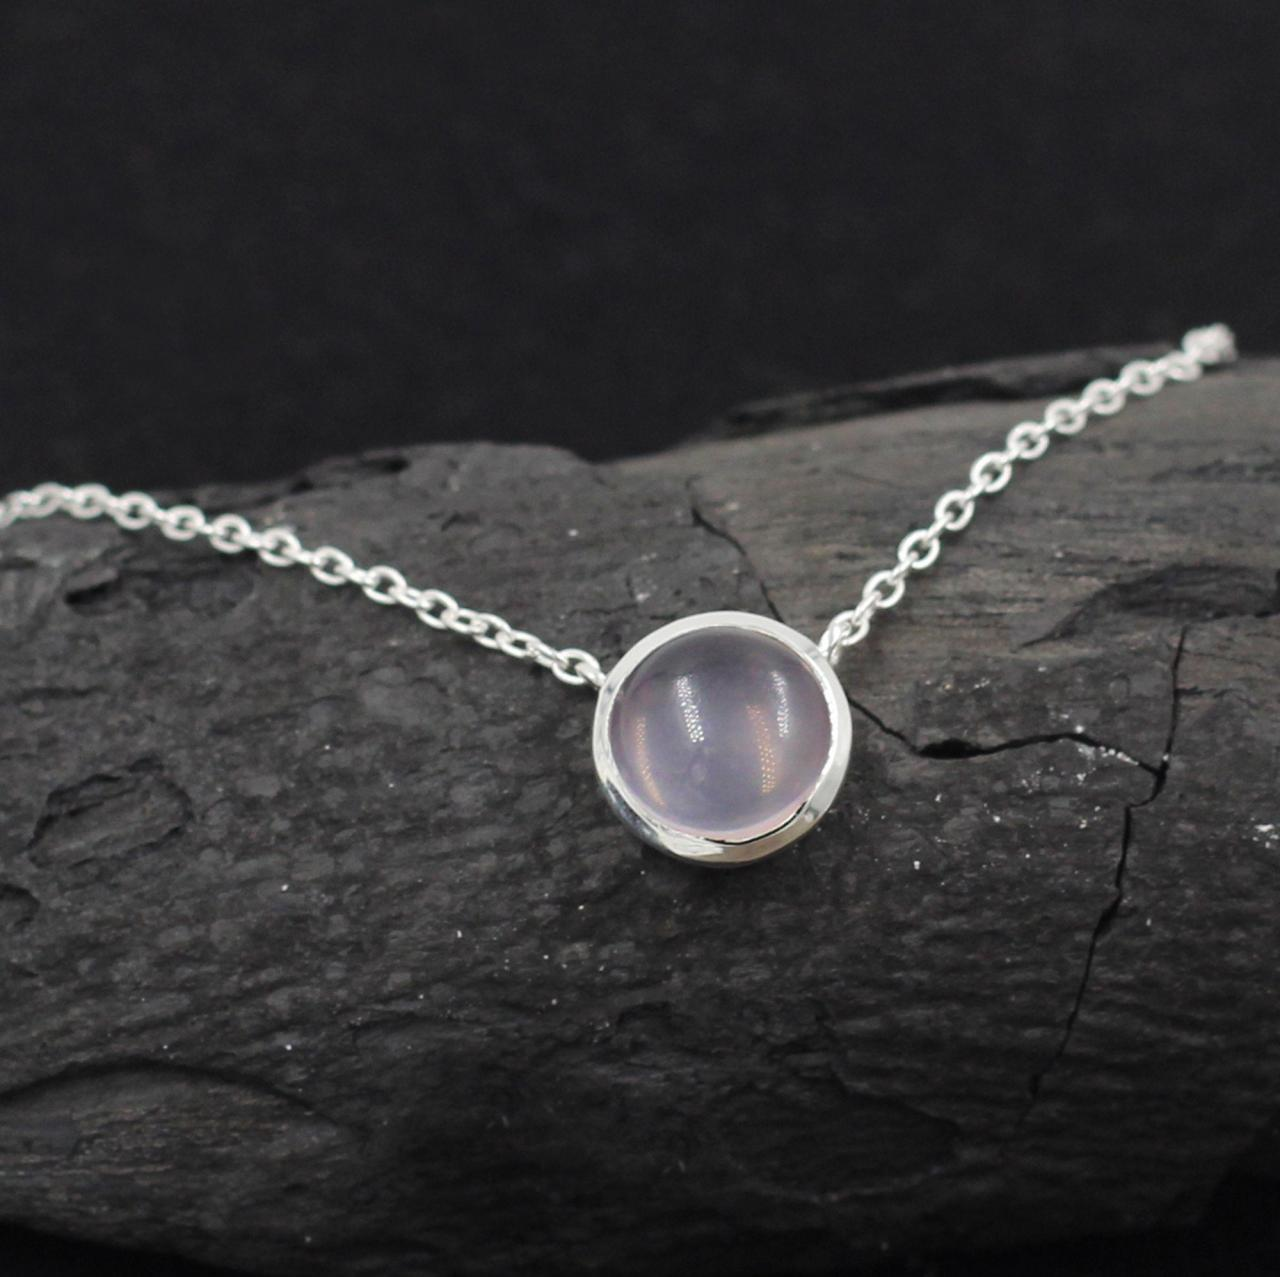 Brazilian Rose Quartz Cabochon 10 mm Necklace,Solid 925 Sterling Silver Handmade Jewelry,Anniversary Gift,Proposal Gift,Office Wear Necklace